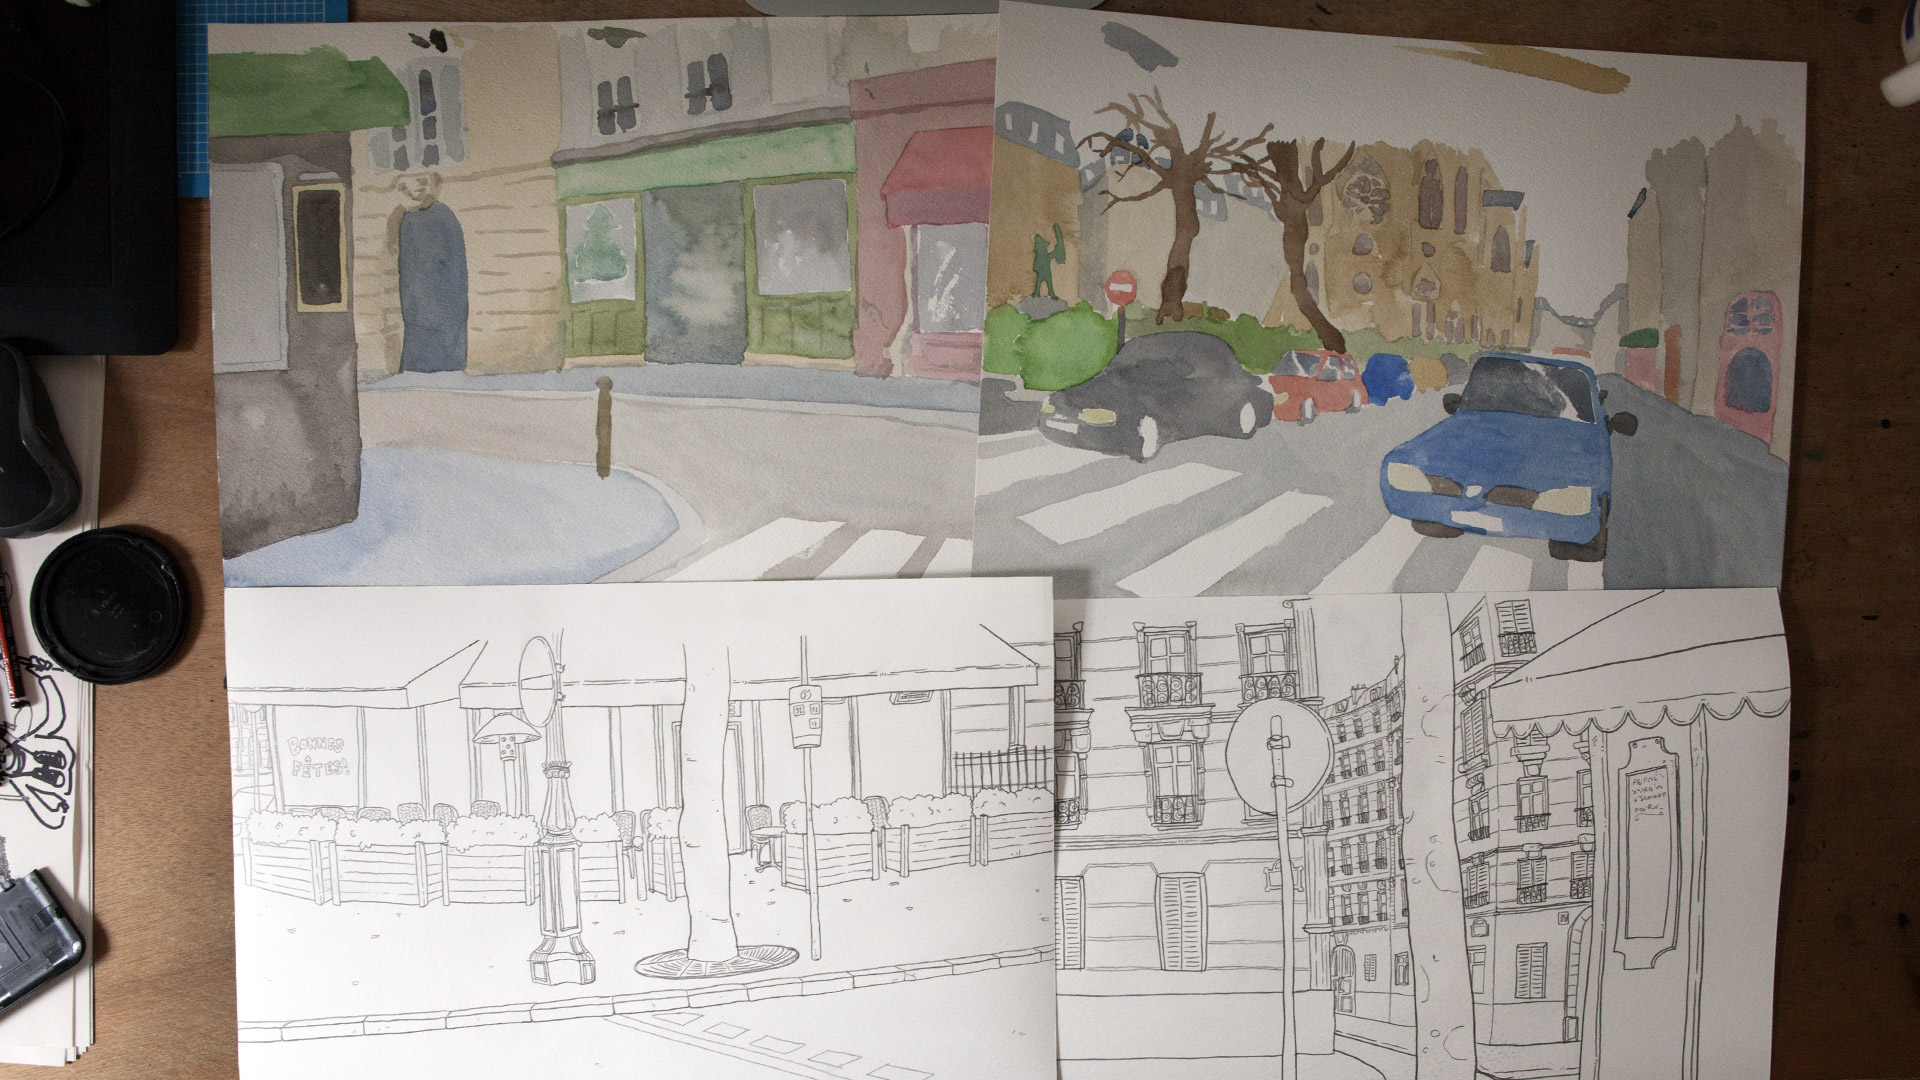 Here are some of the backgrounds. Line drawing on one sheet, colours on an other. This allows the retouching of certain colours if needed. For exemple to make sure a building, a sidewalk, or a street is roughly the same colour over multiple shots.